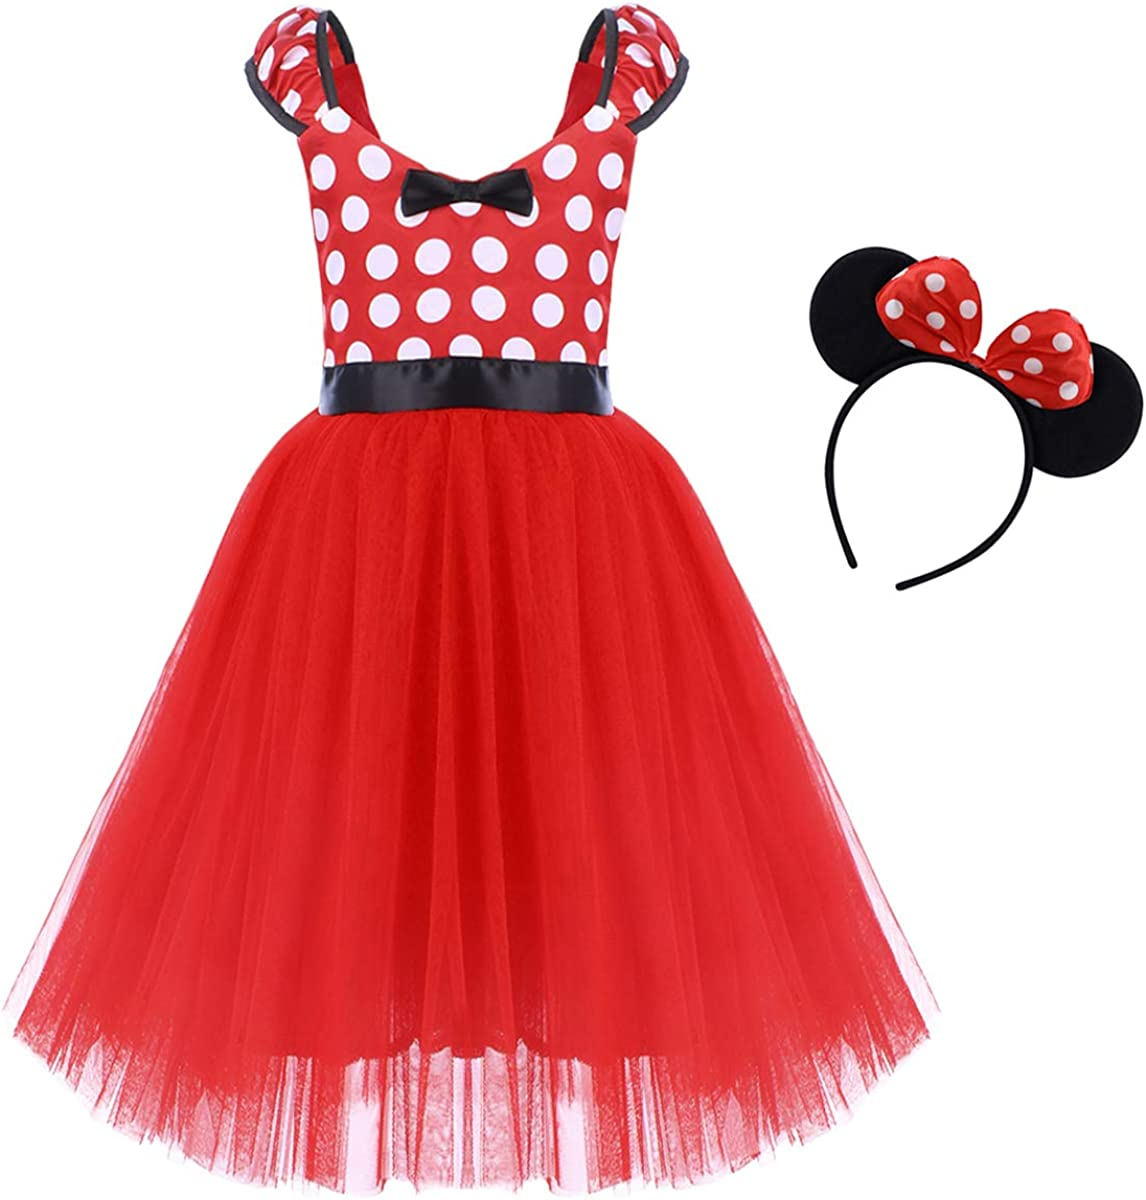 FYMNSI Kids Toddler Baby Girls Polka Dot Tutu Tulle Princess Dress Sleeveless Bowknot Long//Short Mouse Dress Up with Headband 2pcs Outfit for Birthday Party Pageant Christmas Carnival